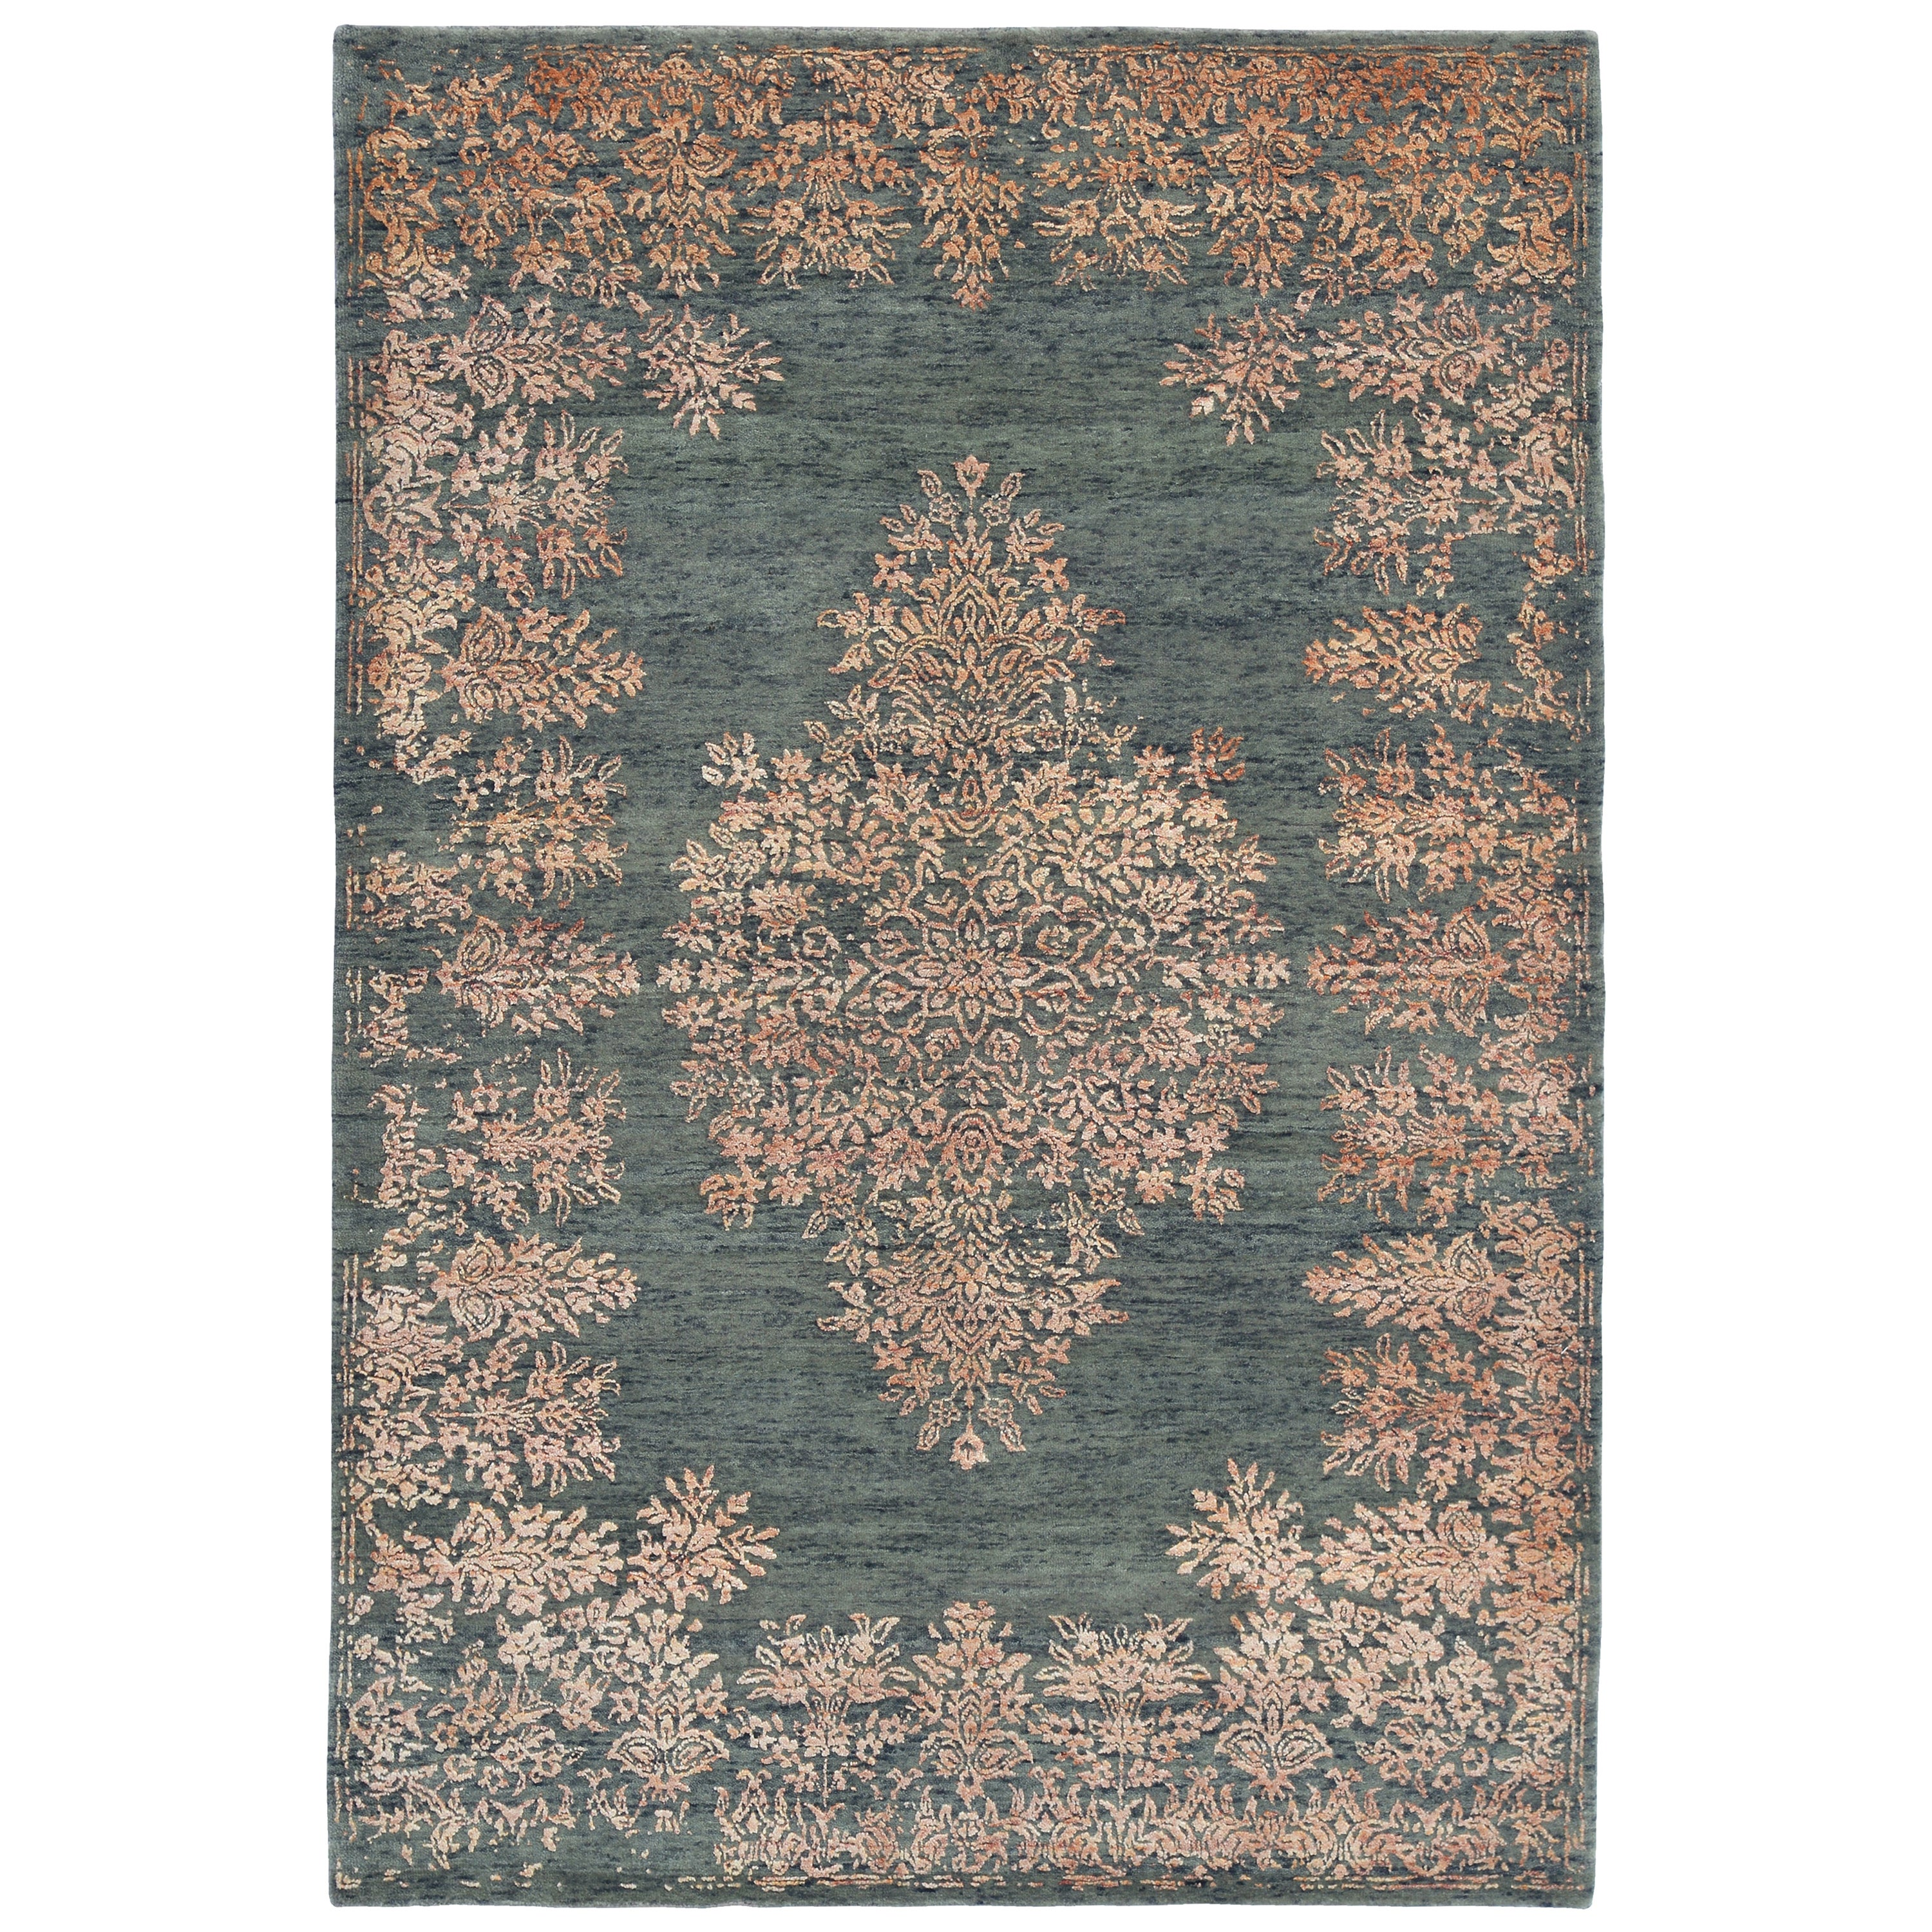 Contemporary Rug with Orange and Green Floral Medallion Pattern by Rug & Kilim